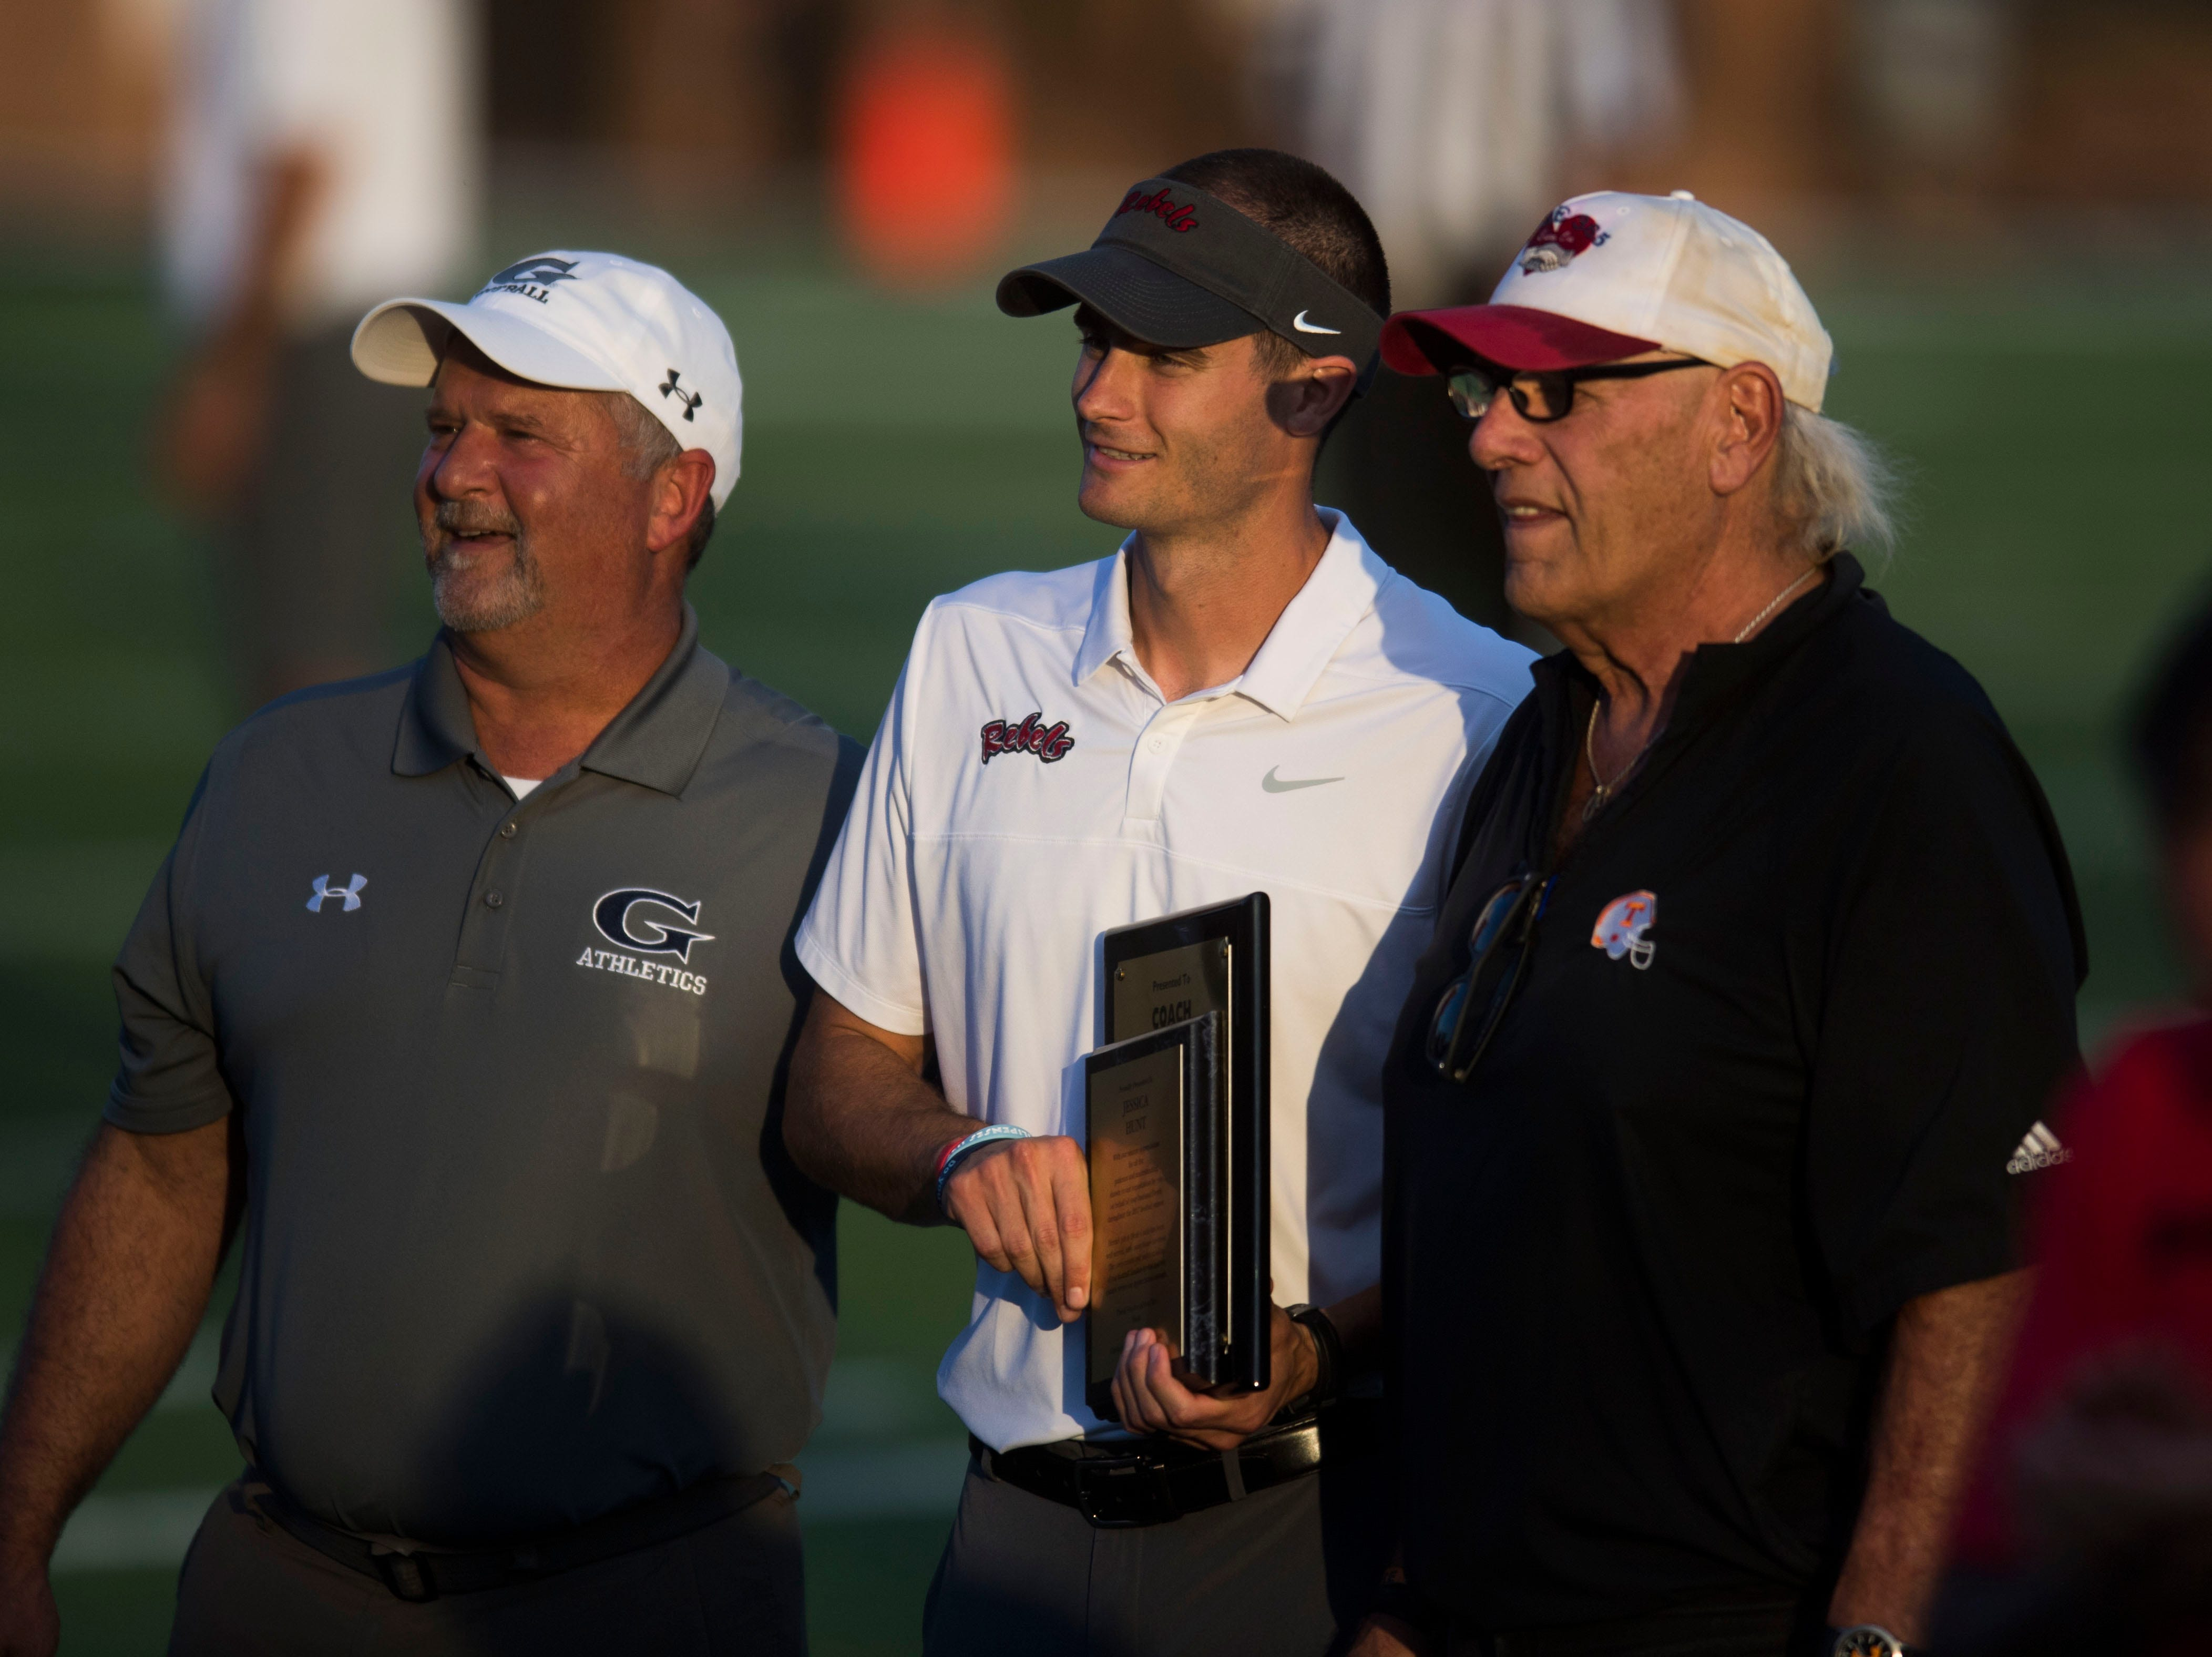 Maryville Head Coach Derek Hunt accepts an award before a game between Cleveland and Maryville at Maryville Thursday, Oct. 4, 2018. Maryville defeated Cleveland 42-7.